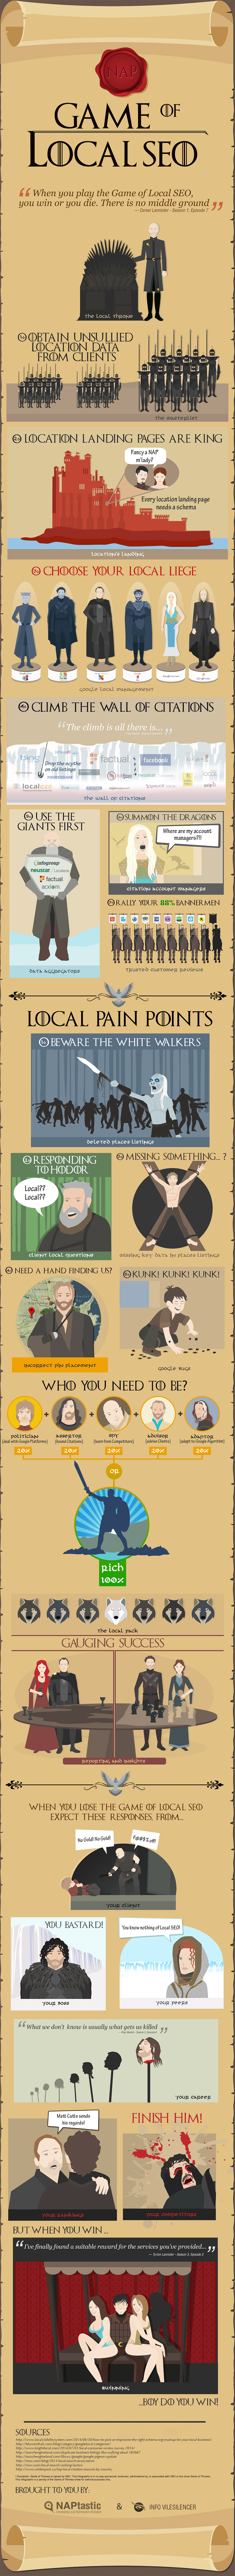 infographie-local-seo-game-of-thrones